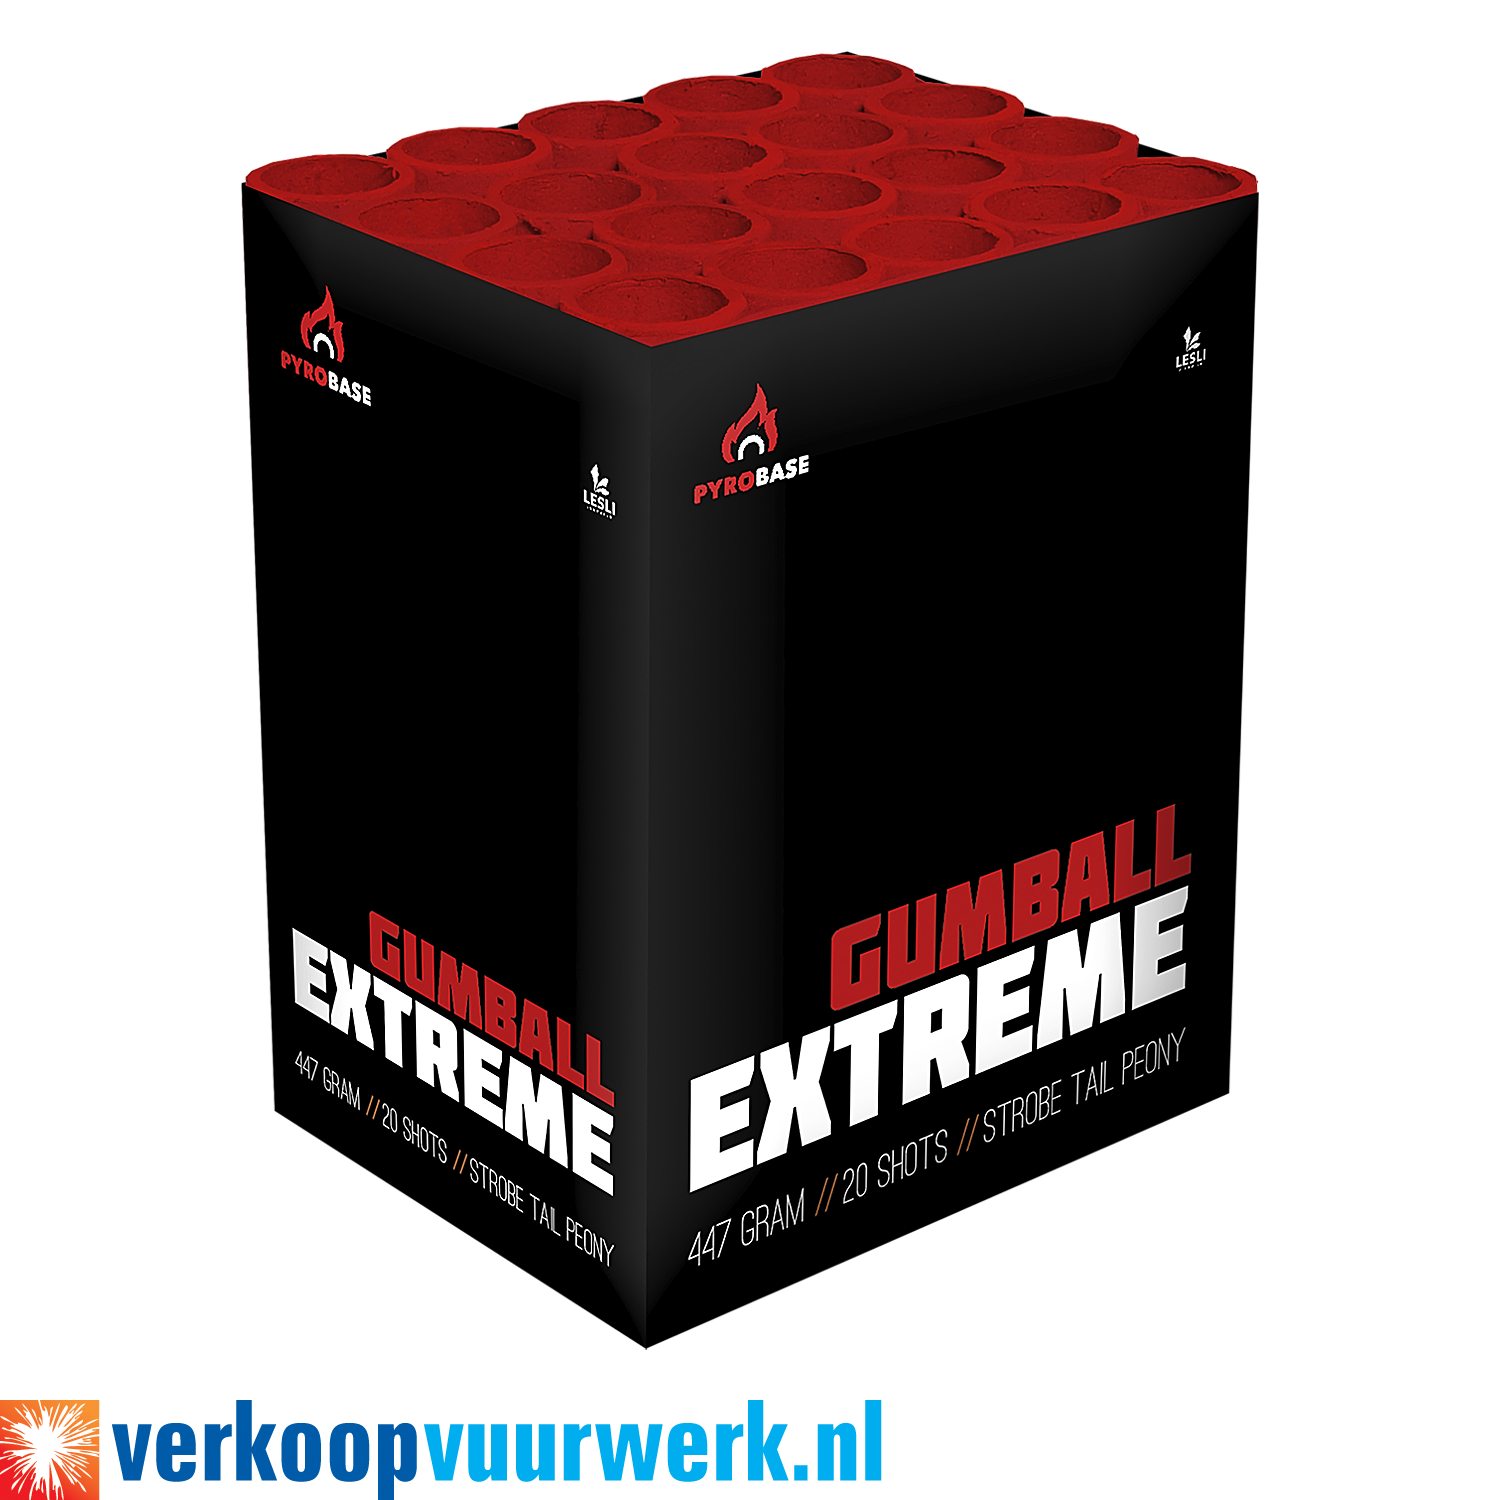 Gumball extreme